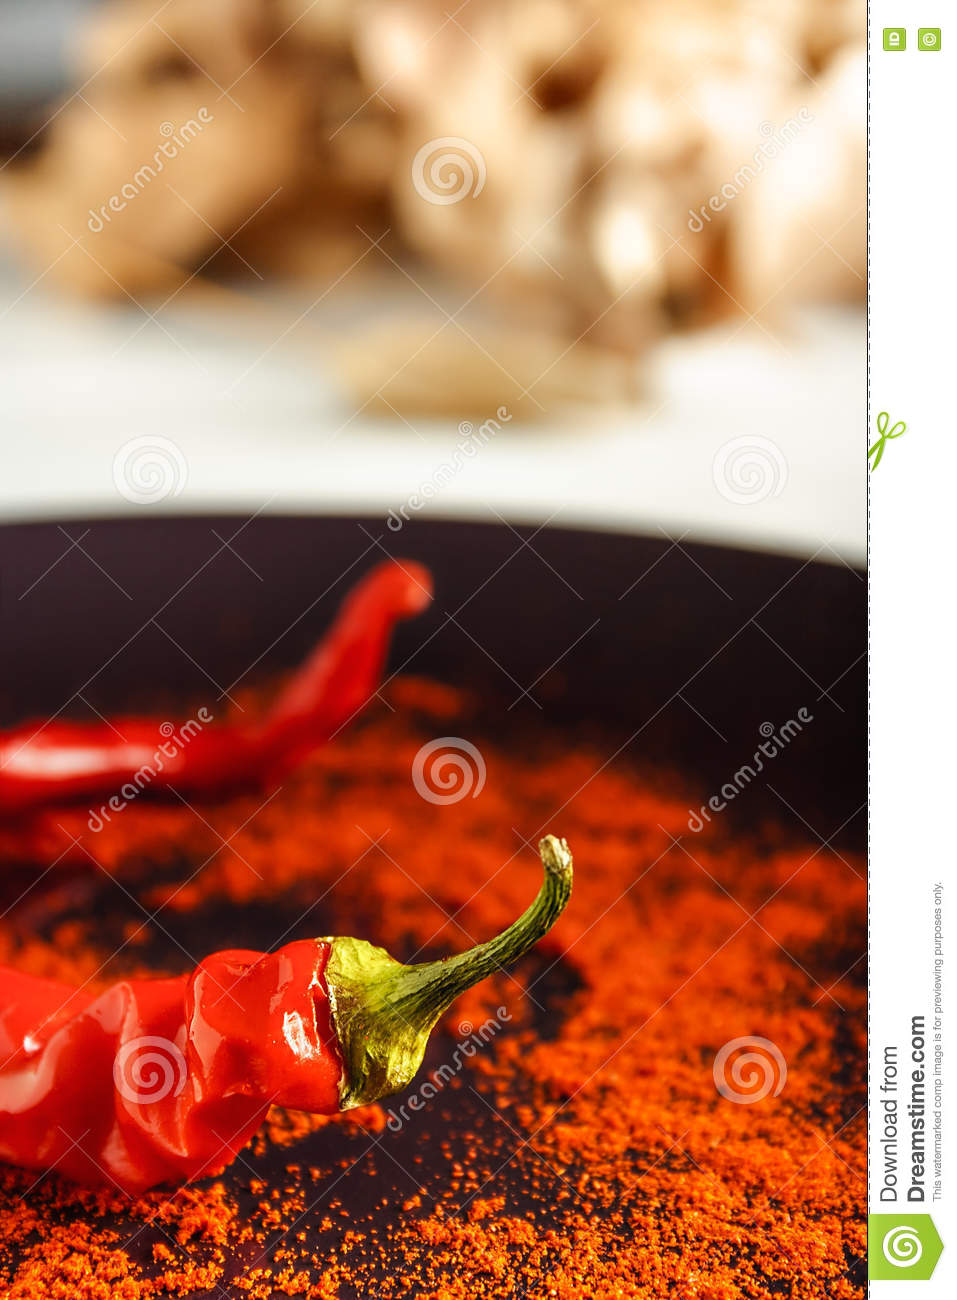 Red pepper with ground paprika.